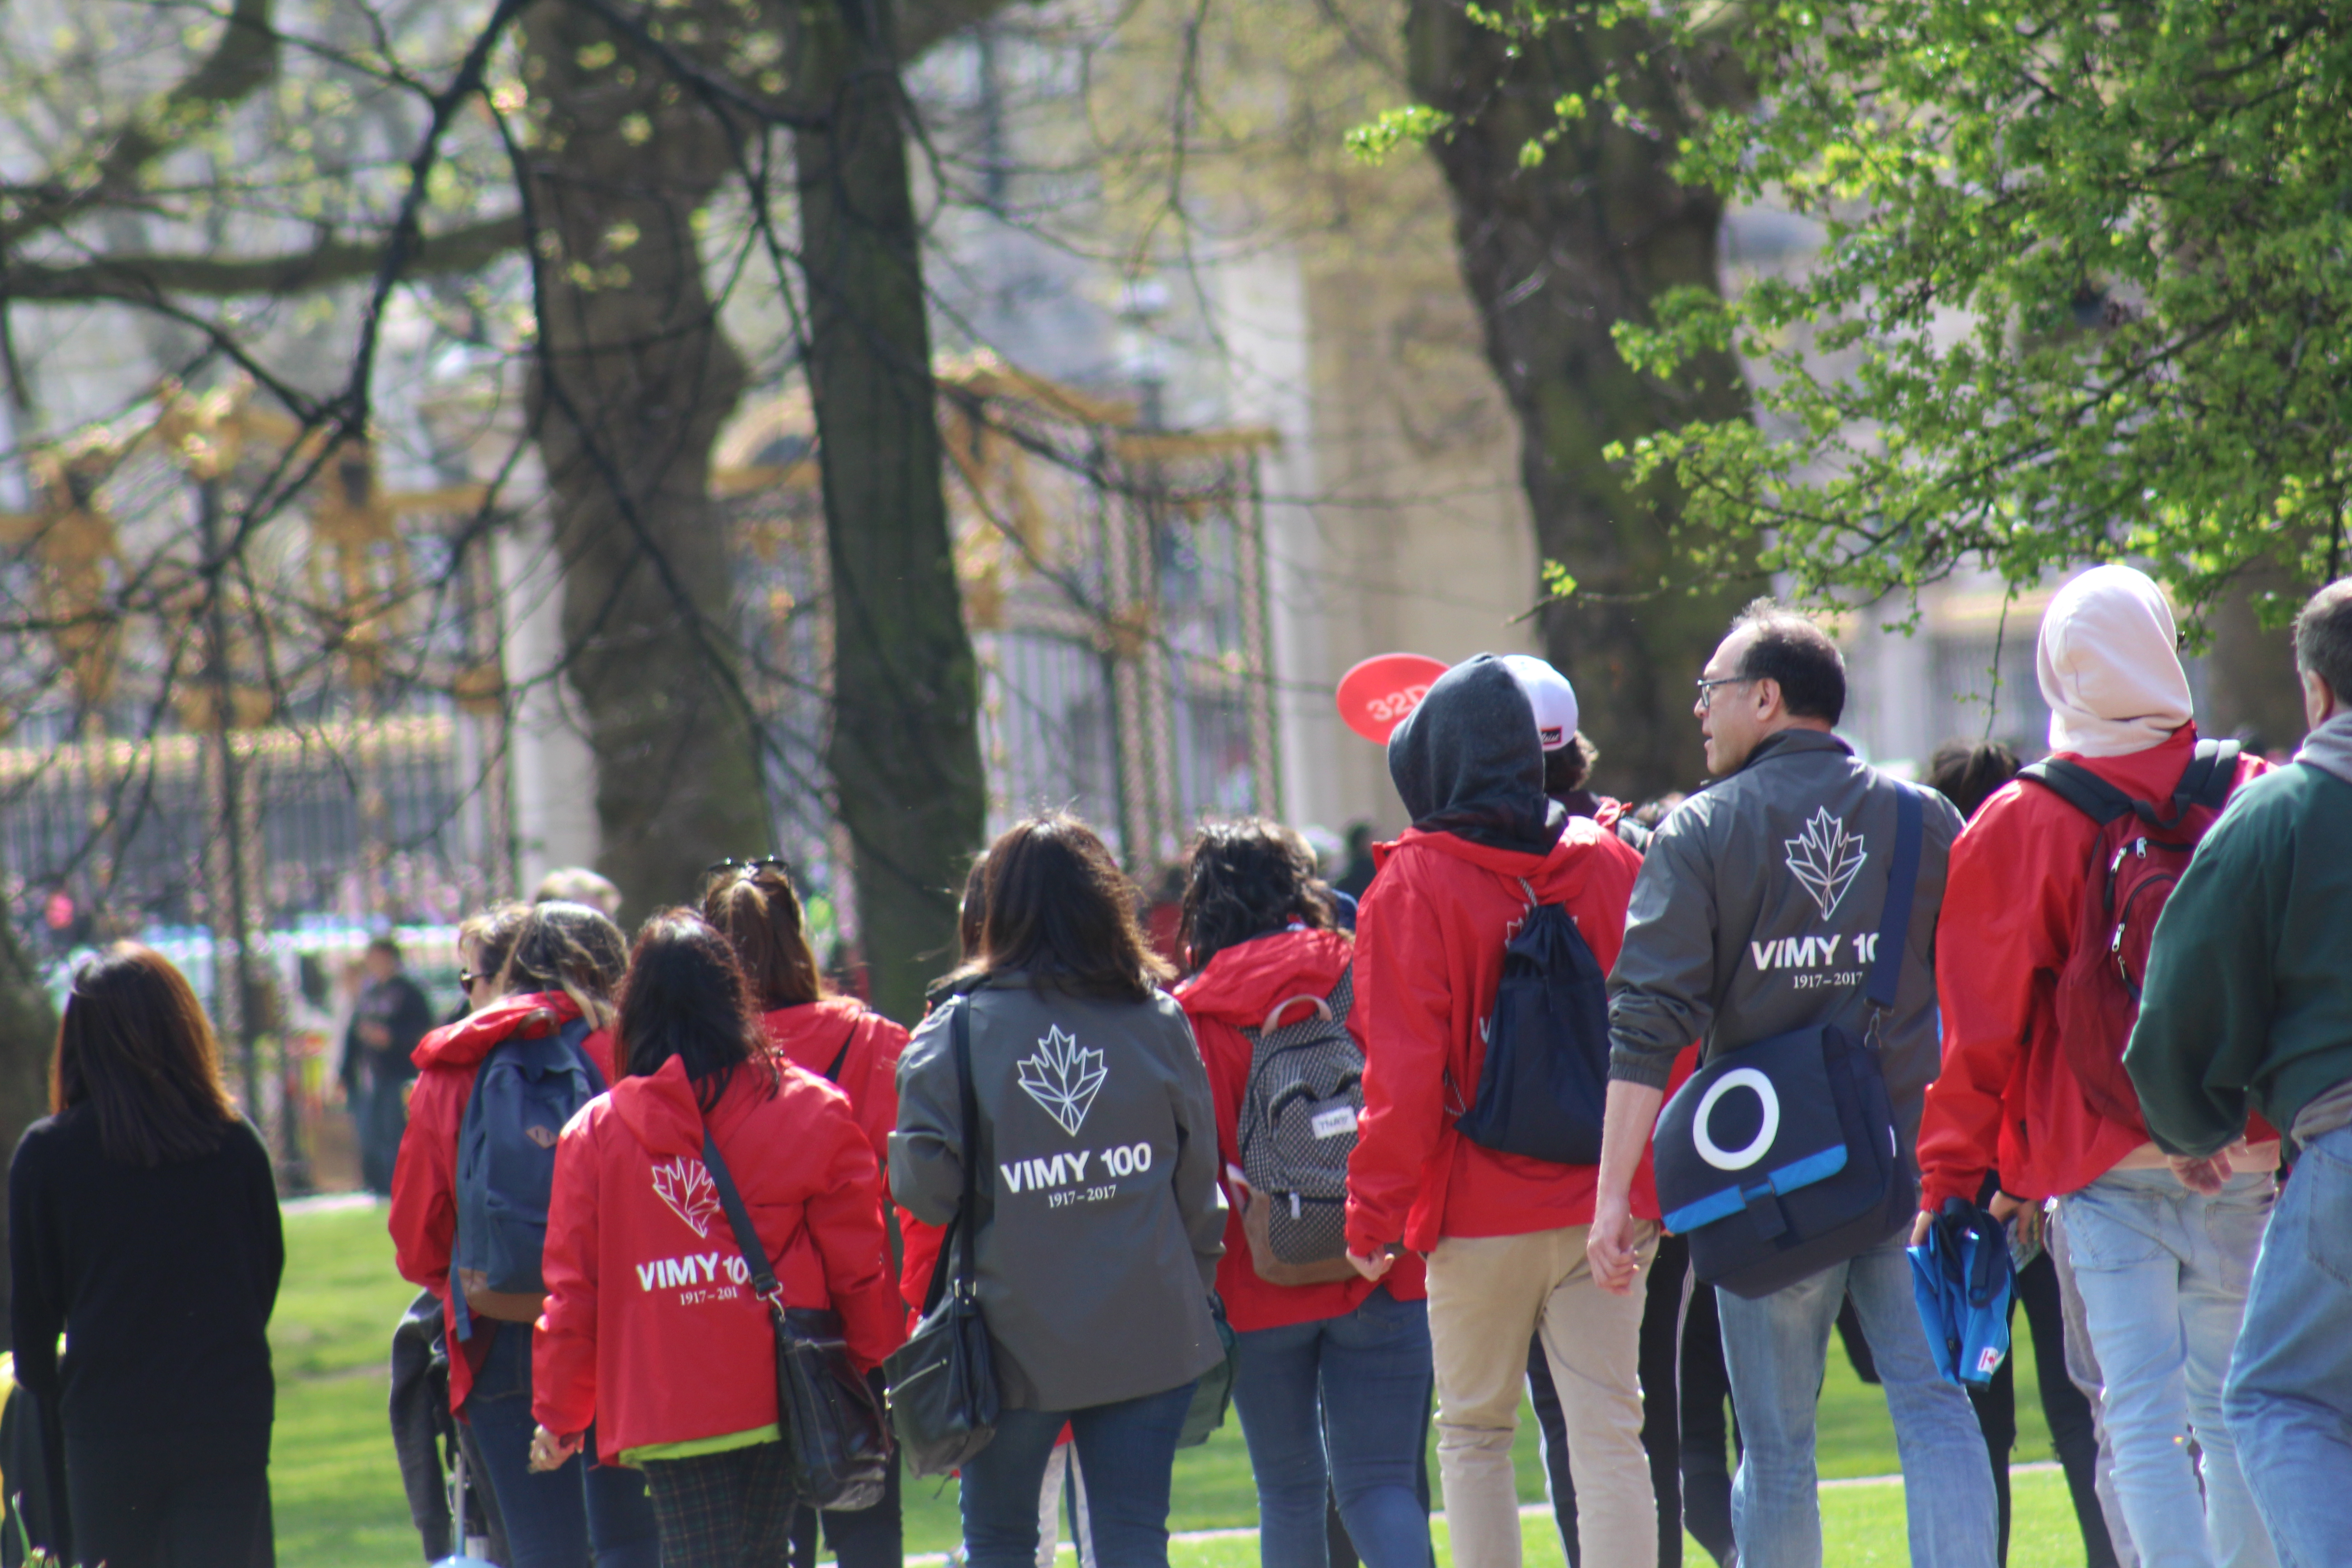 Tour groups in Red and Grey Vimy Ridge Jackets walking